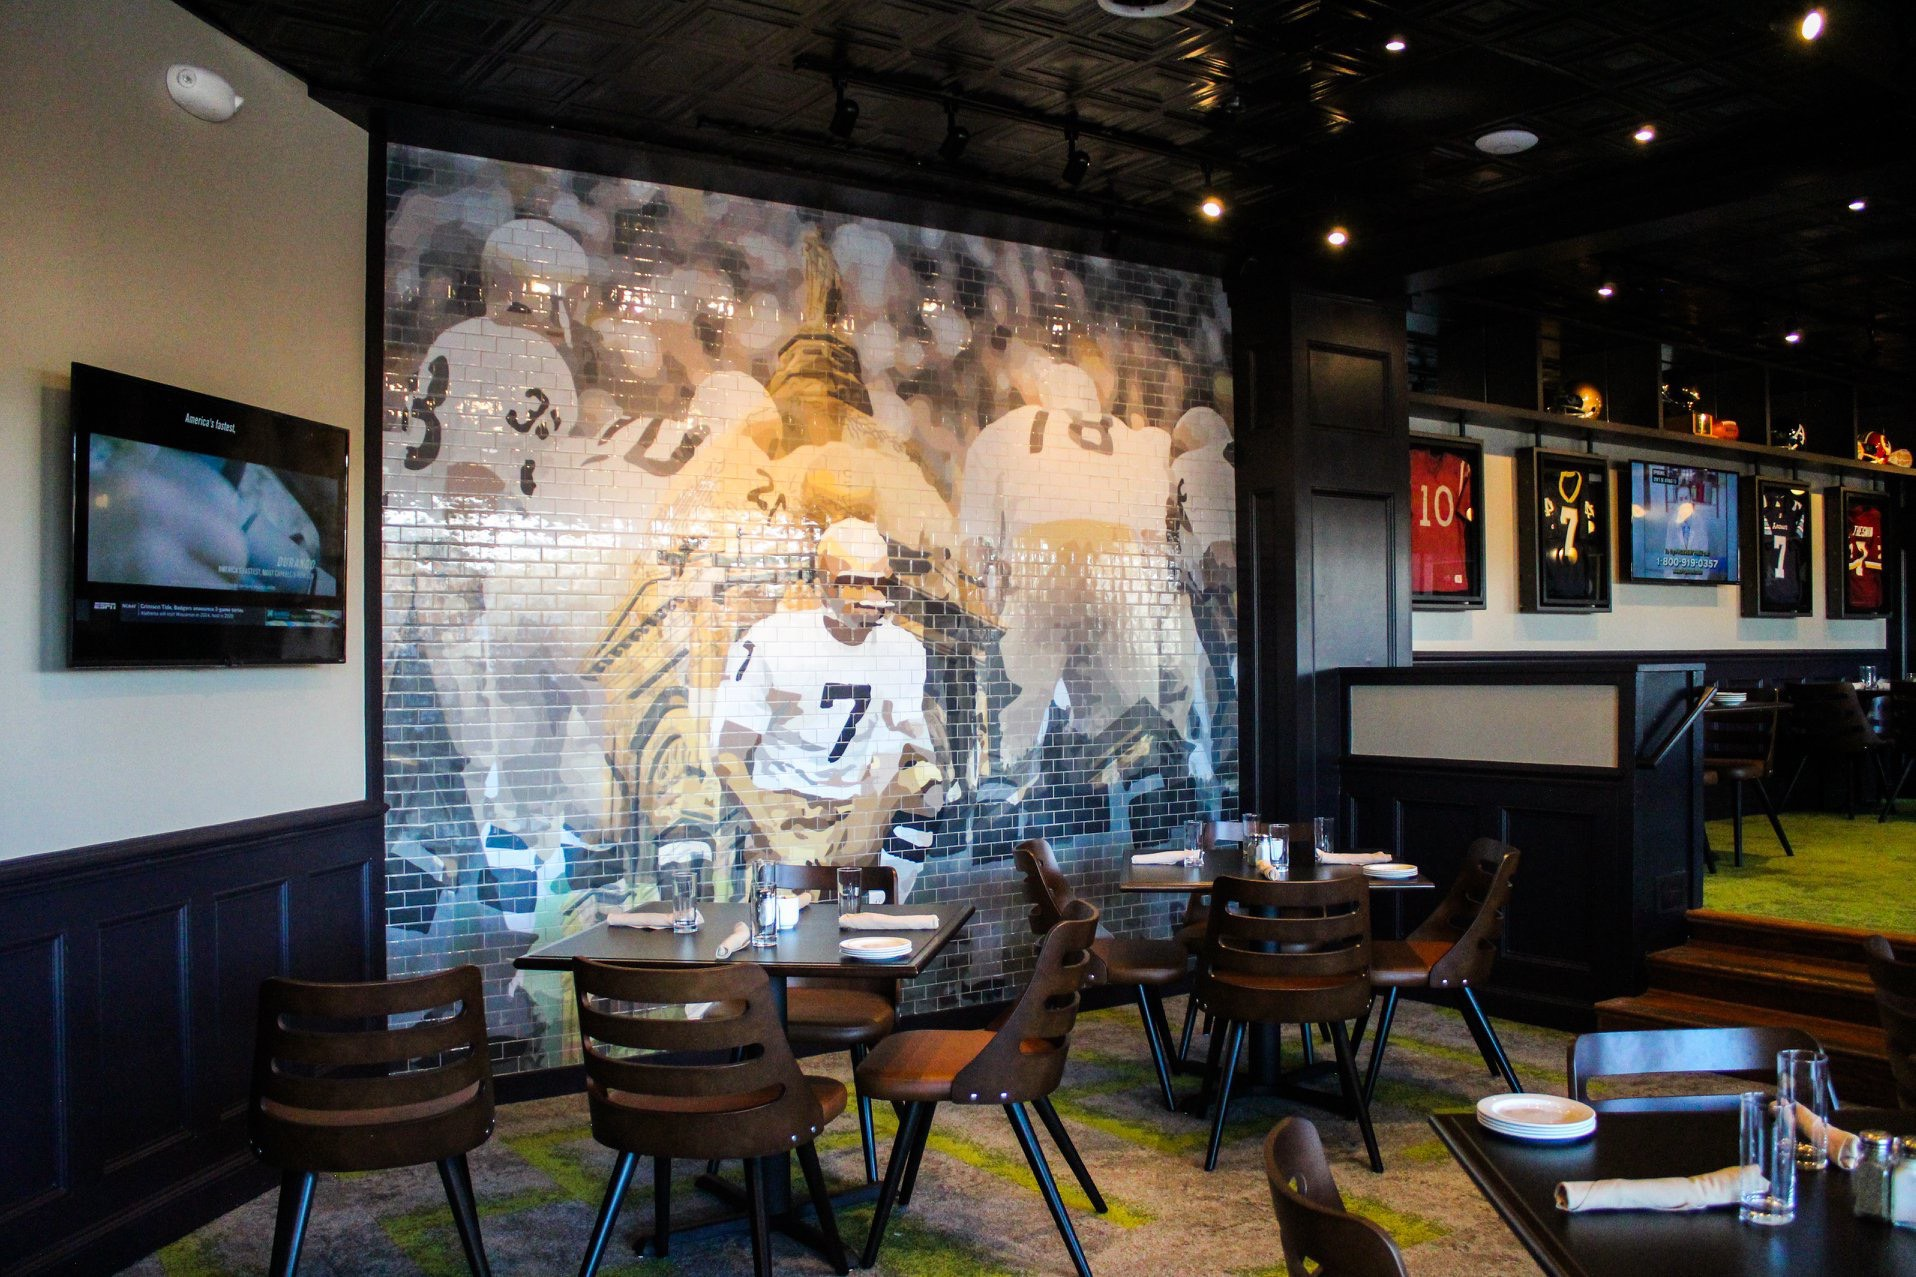 A slick mural of Joe Theismann from his time at Notre Dame.